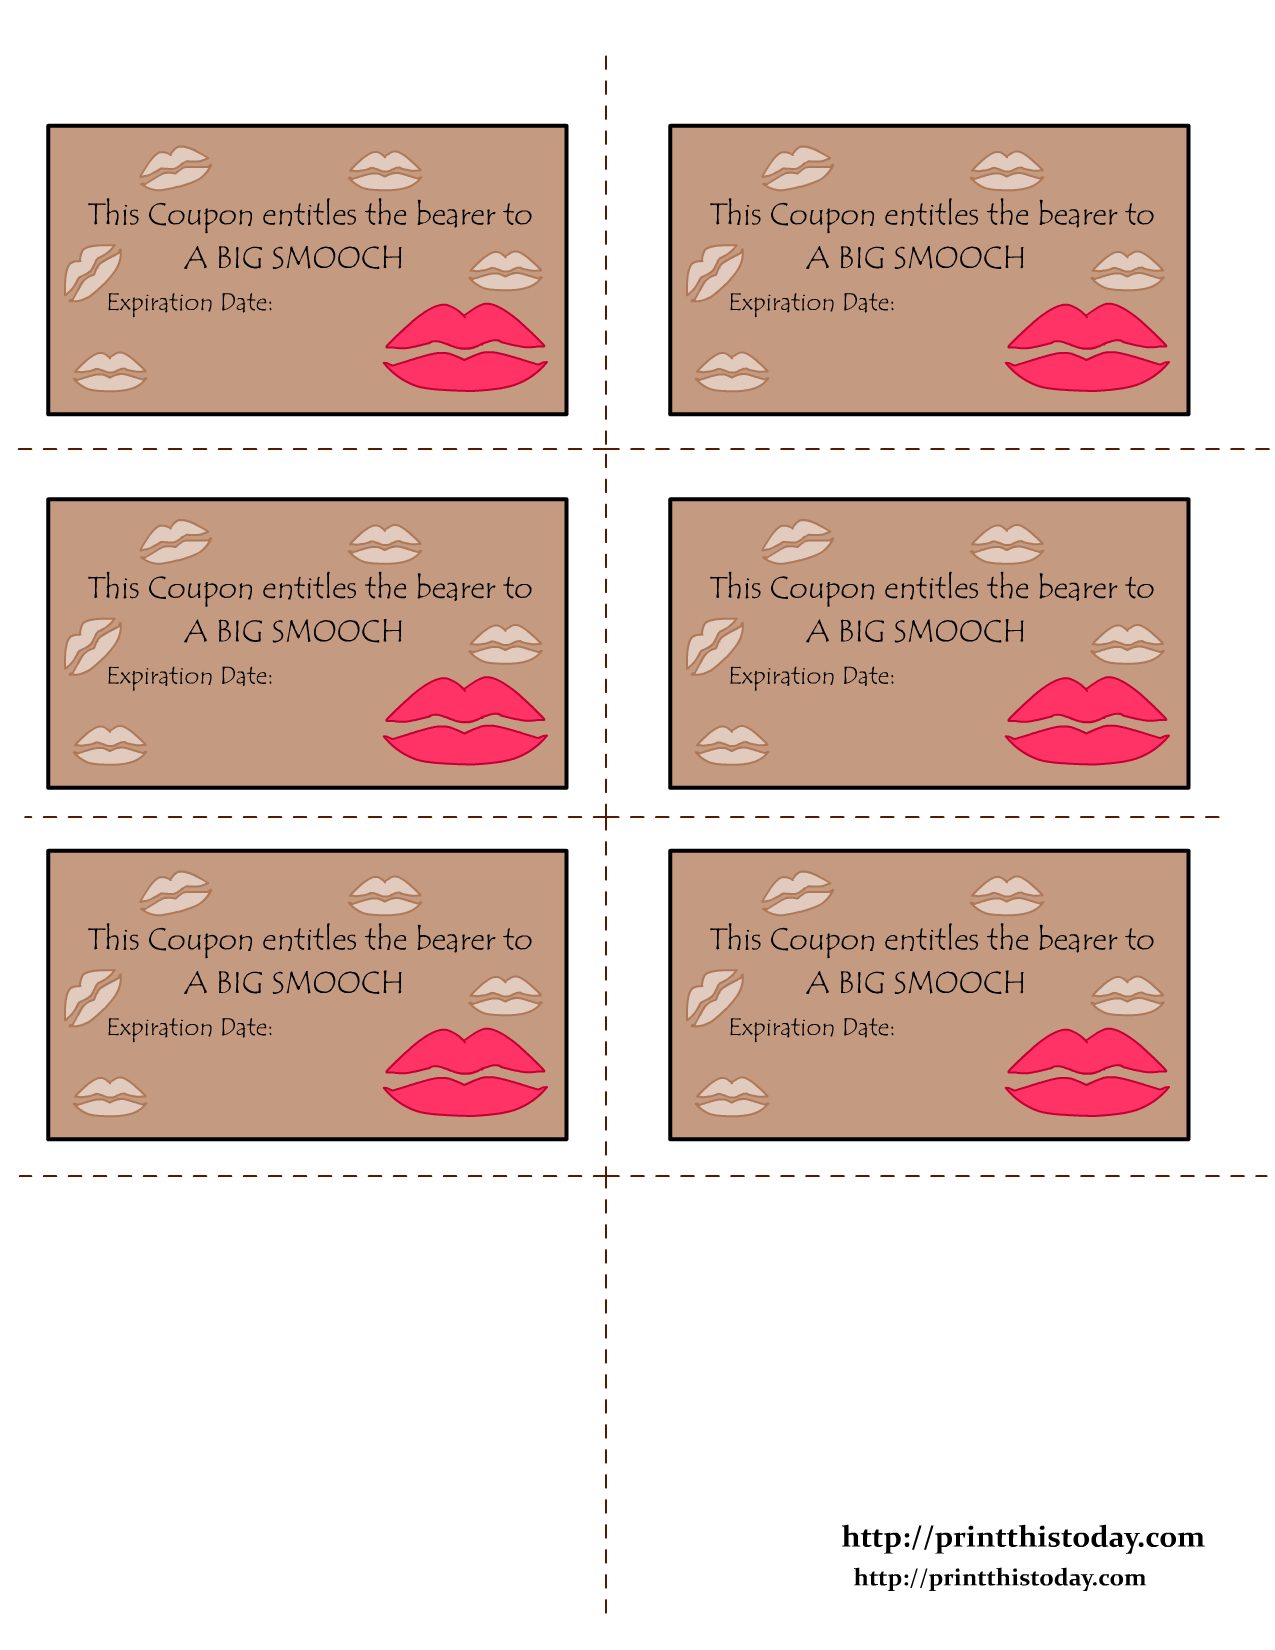 Free Printable Valentine Coupons | Date Night | Love Coupons, Love - Free Printable Coupons For Husband